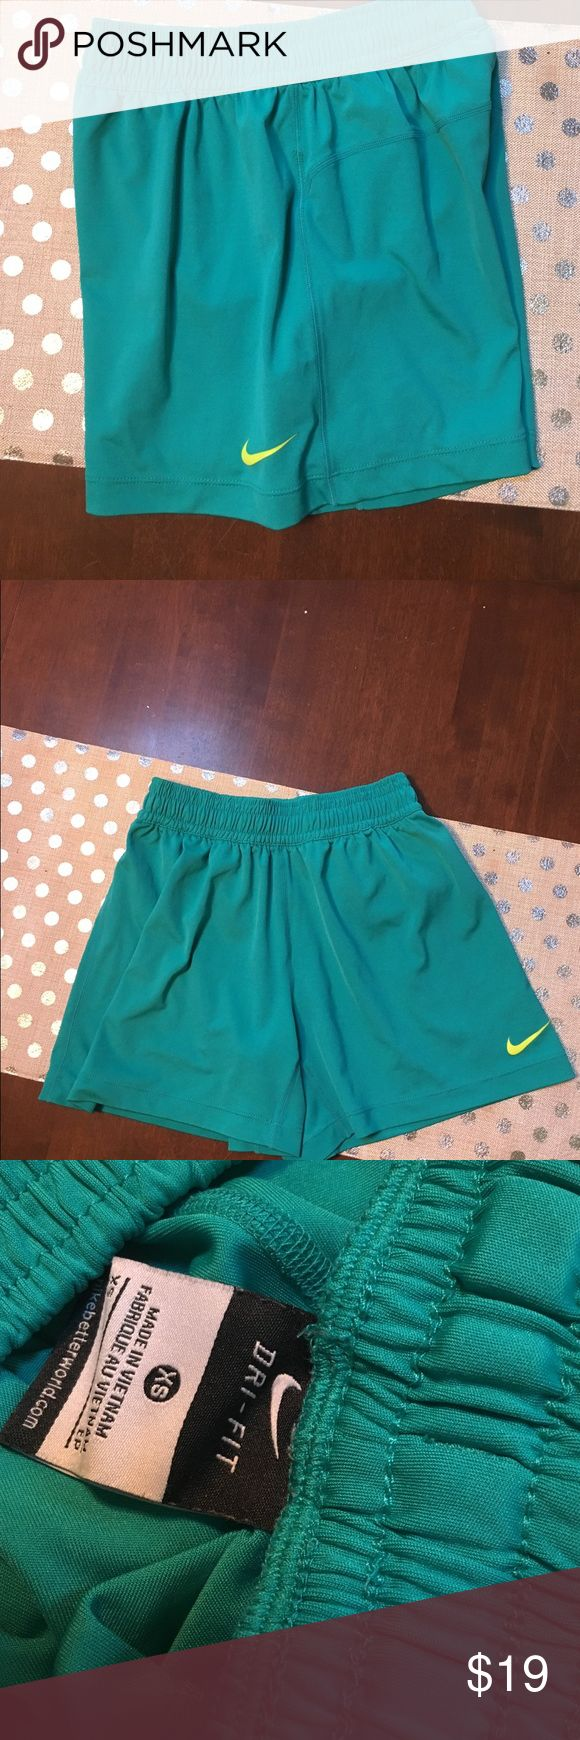 Nike Dri Fit Shorts XS Nike Size XS Dri Fit Running Short. Excellent condition. Sea-foam Green with Neon Yellow Swoosh. Nike Shorts